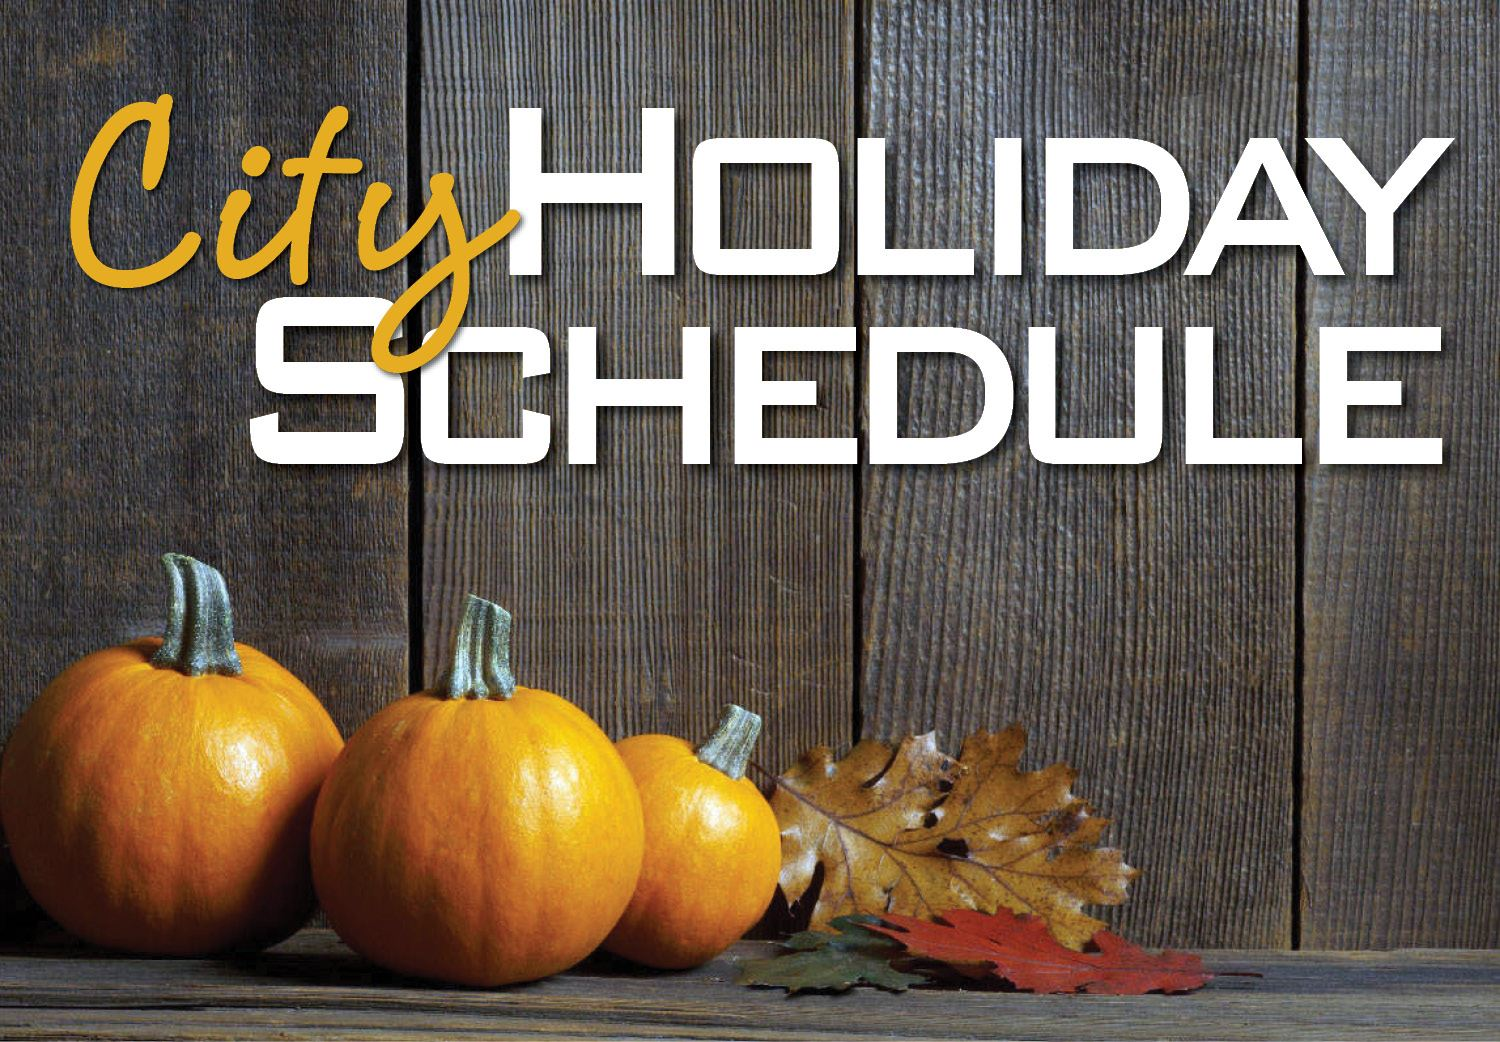 City Holiday Schedule_Pumpkin_360x250